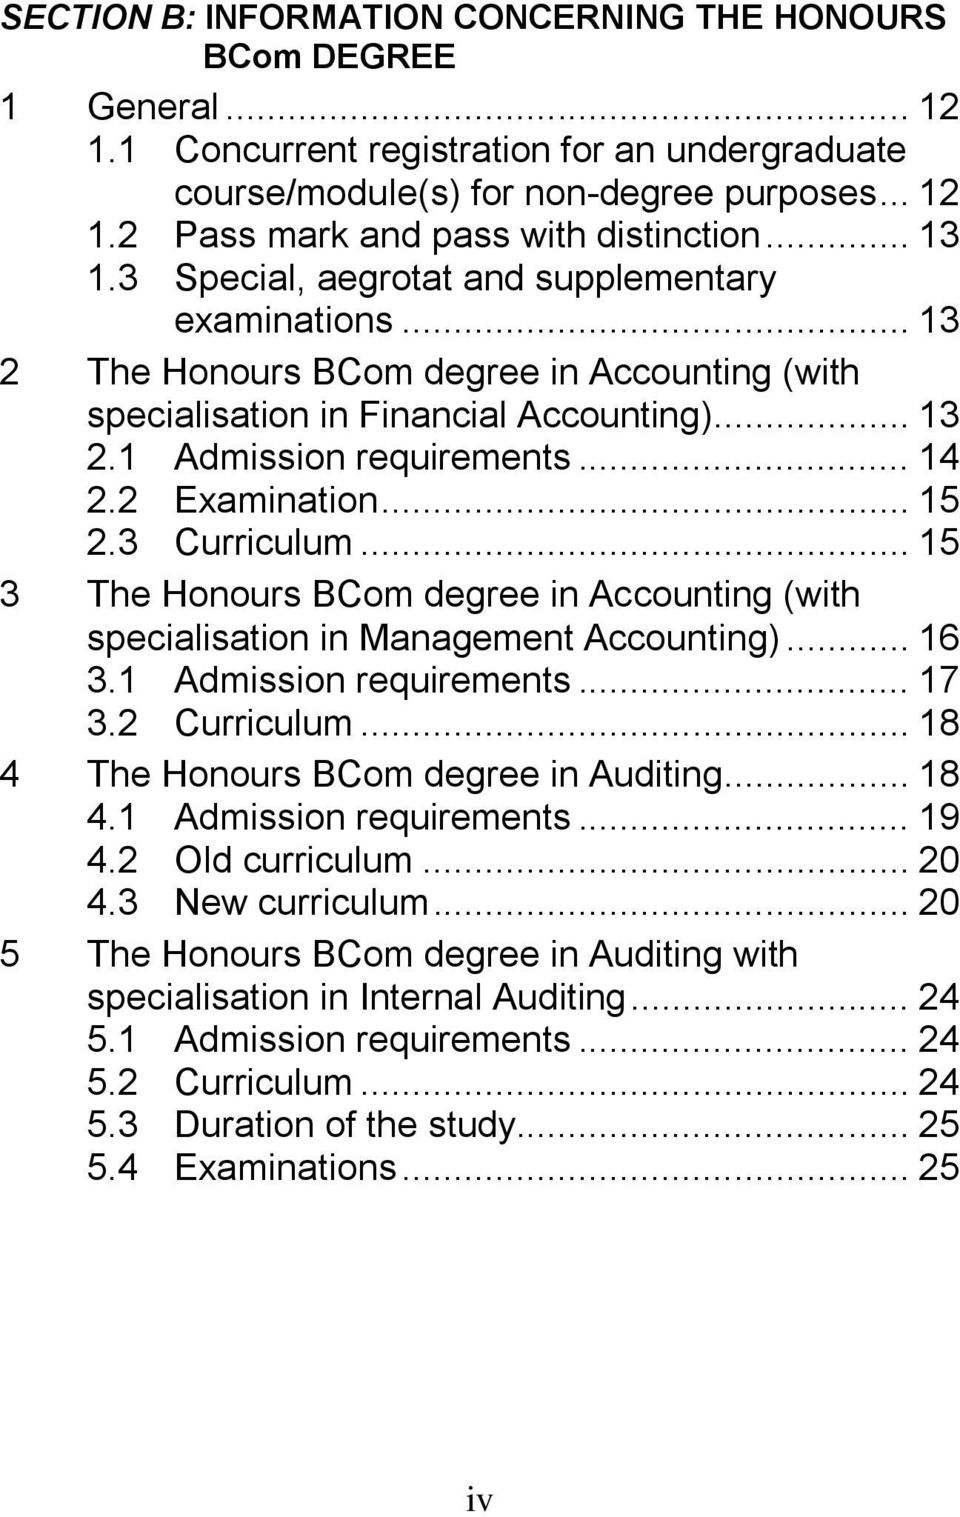 2 Examination... 15 2.3 Curriculum... 15 3 The Honours BCom degree in Accounting (with specialisation in Management Accounting)... 16 3.1 Admission requirements... 17 3.2 Curriculum.